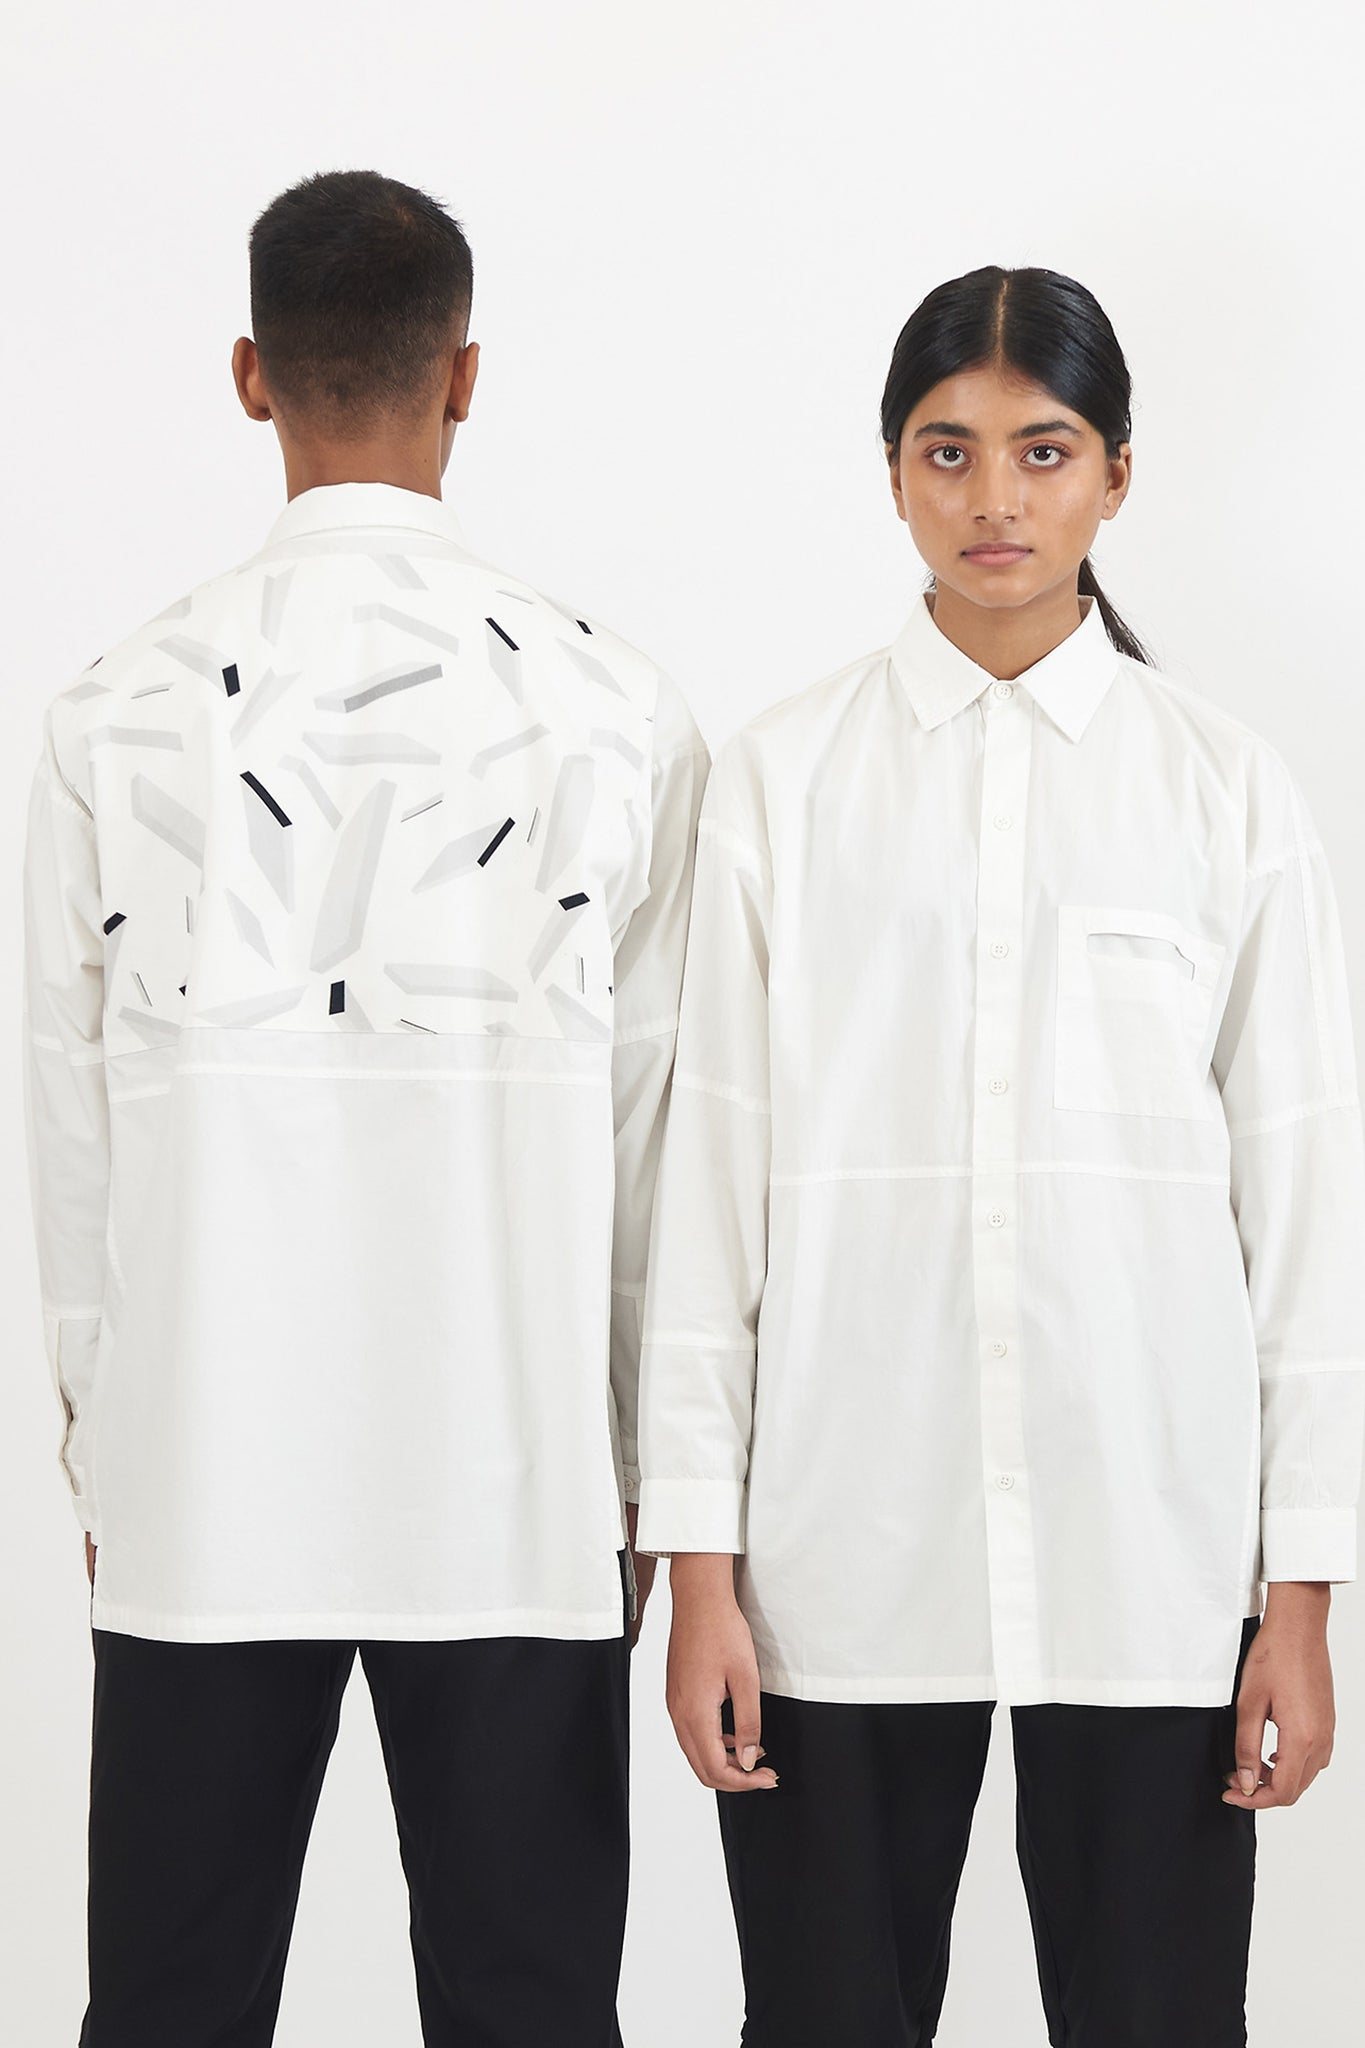 Space Debris Classic White Shirt | EDITION OF 50